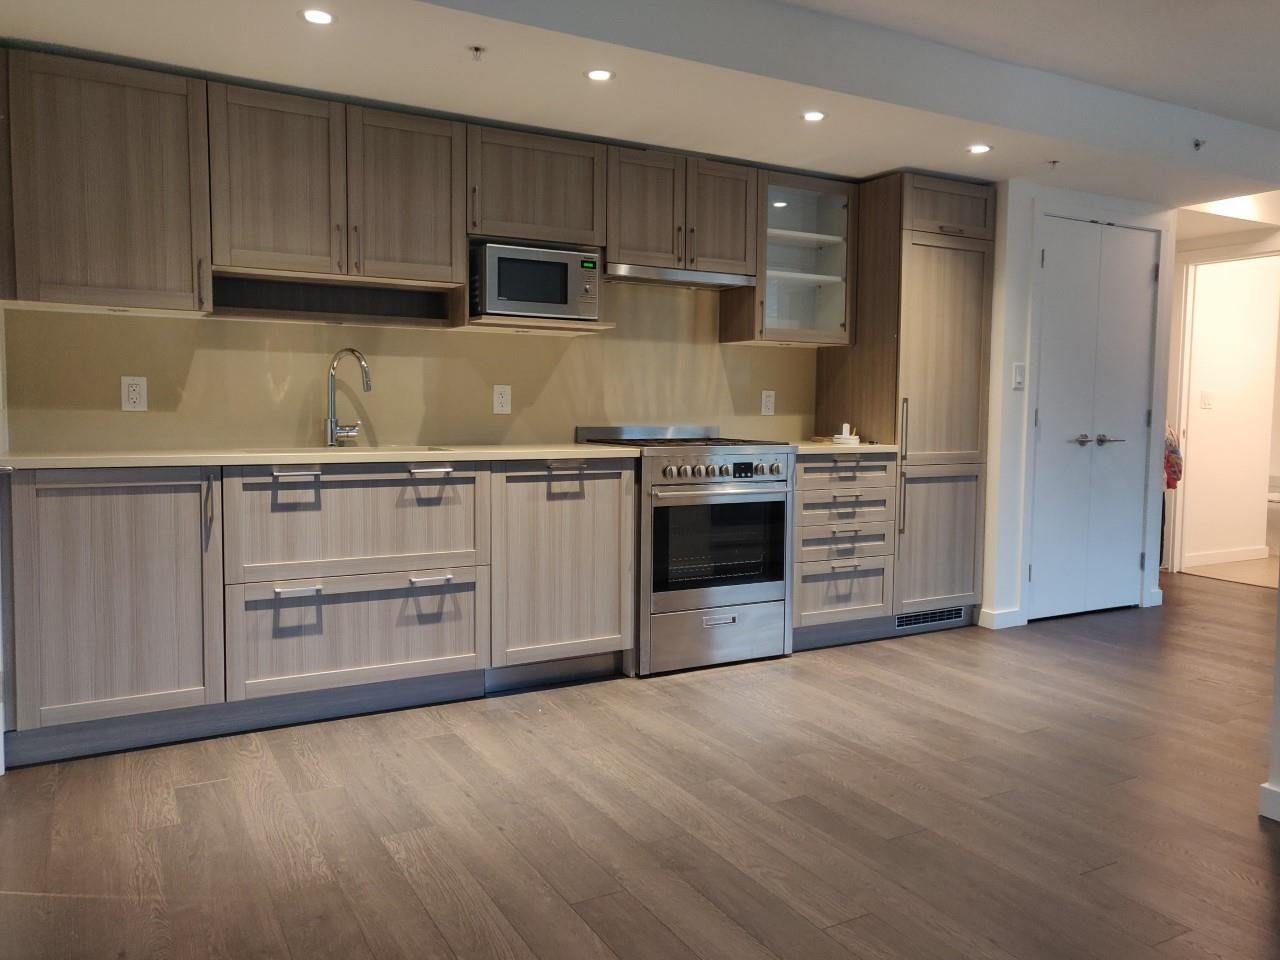 """Photo 7: Photos: 205 5515 BOUNDARY Road in Vancouver: Collingwood VE Condo for sale in """"WALL CENTER CETNRAL PARK"""" (Vancouver East)  : MLS®# R2516109"""